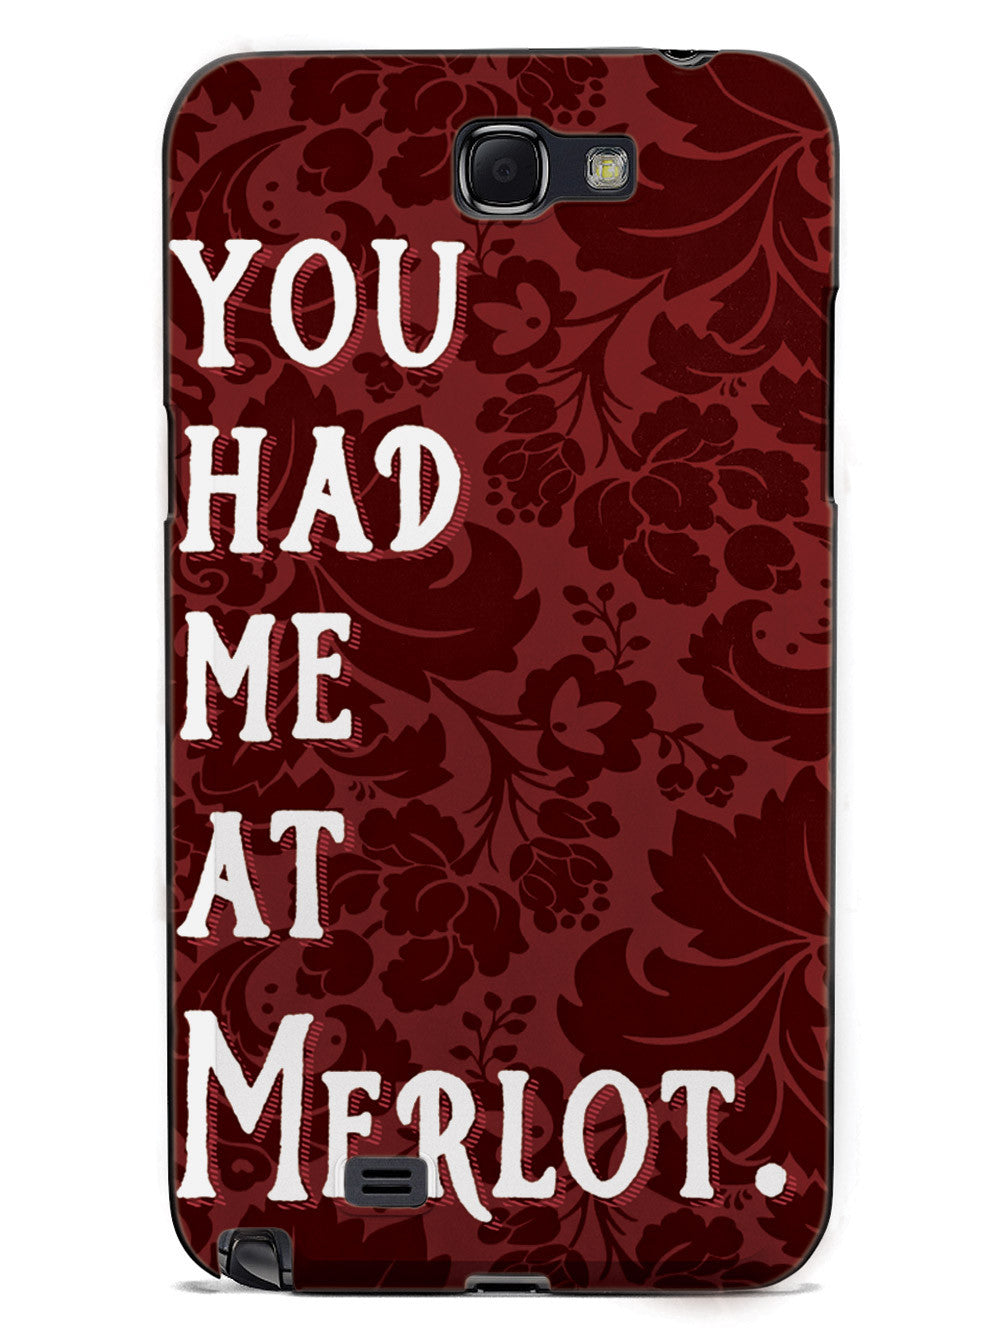 You Had Me At Merlot - Wine Case